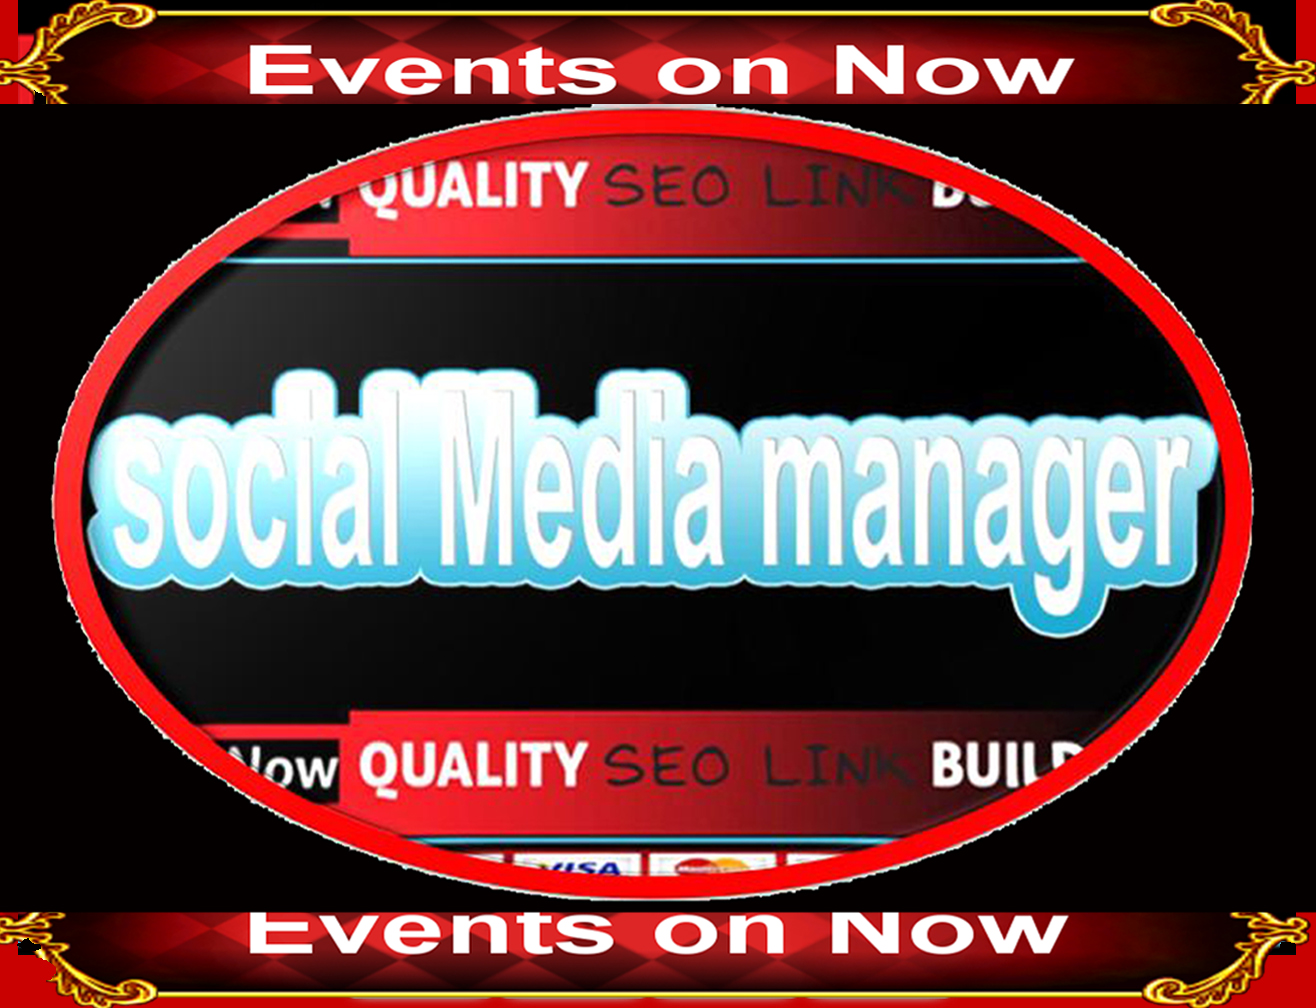 Get your social media manager very cheep rate